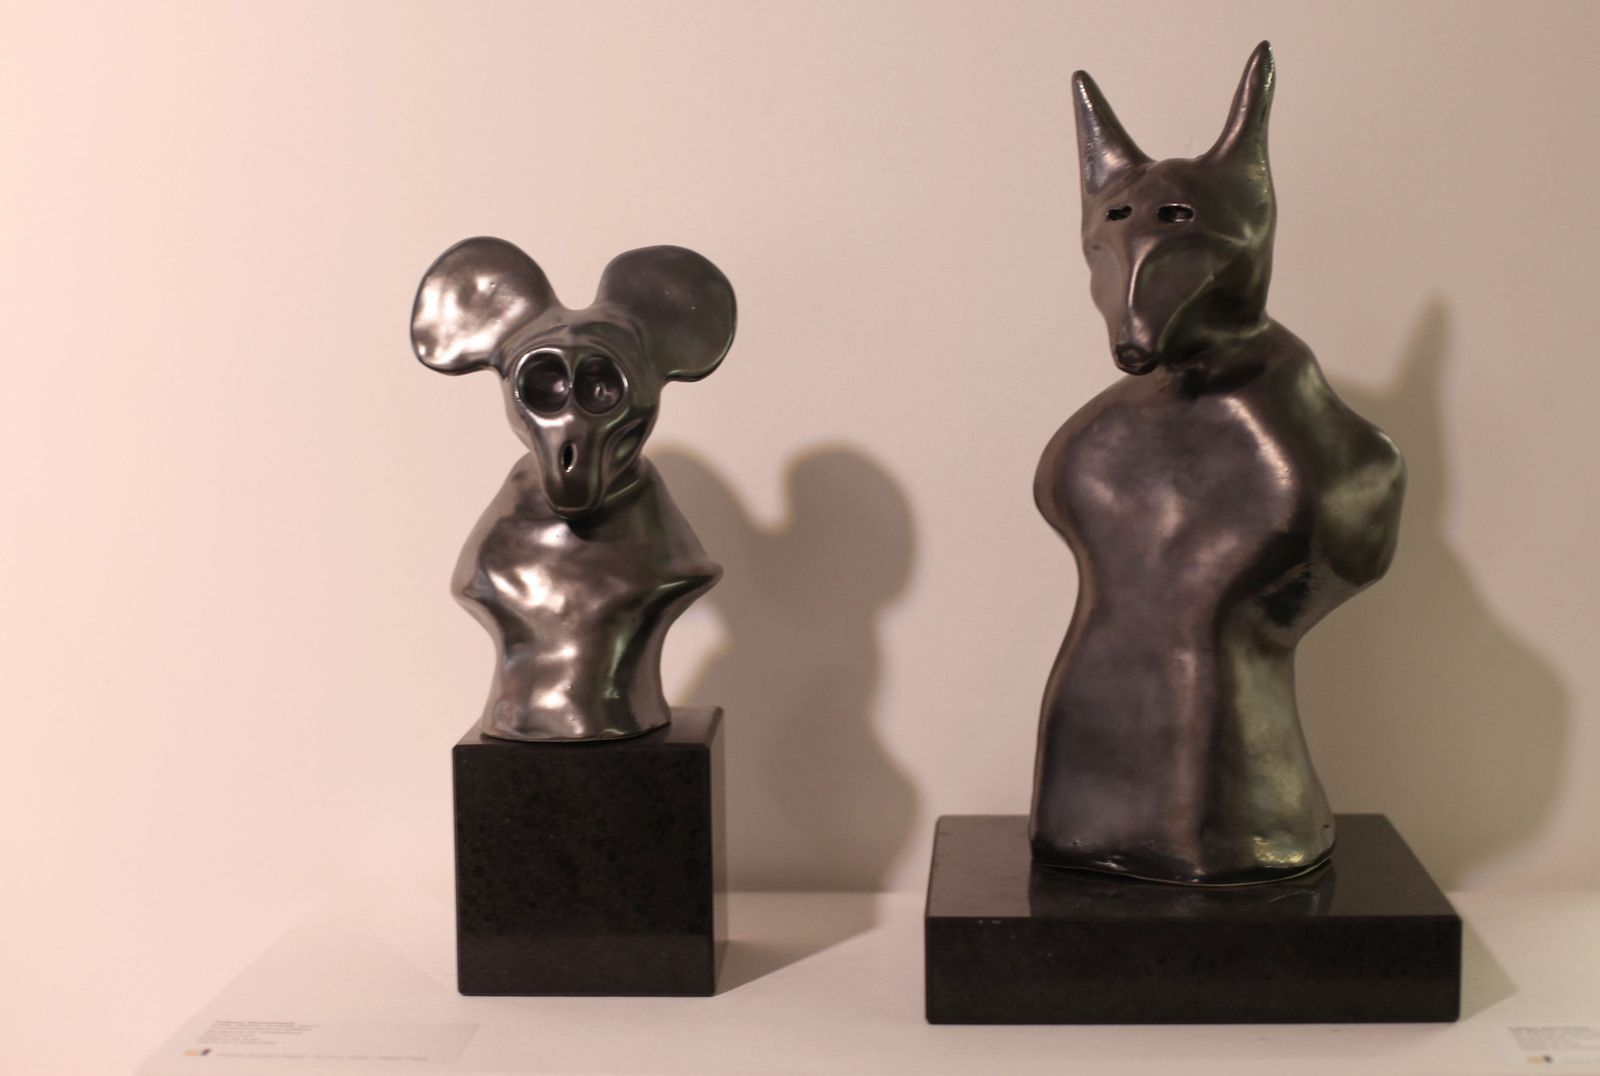 """Little Mickey revisité"", 2017 et ""Big Batman revisité"", 2017 de Fabien VERSCHAERE - Courtesy Galerie Brugier-Rigail © Photo Éric Simon"